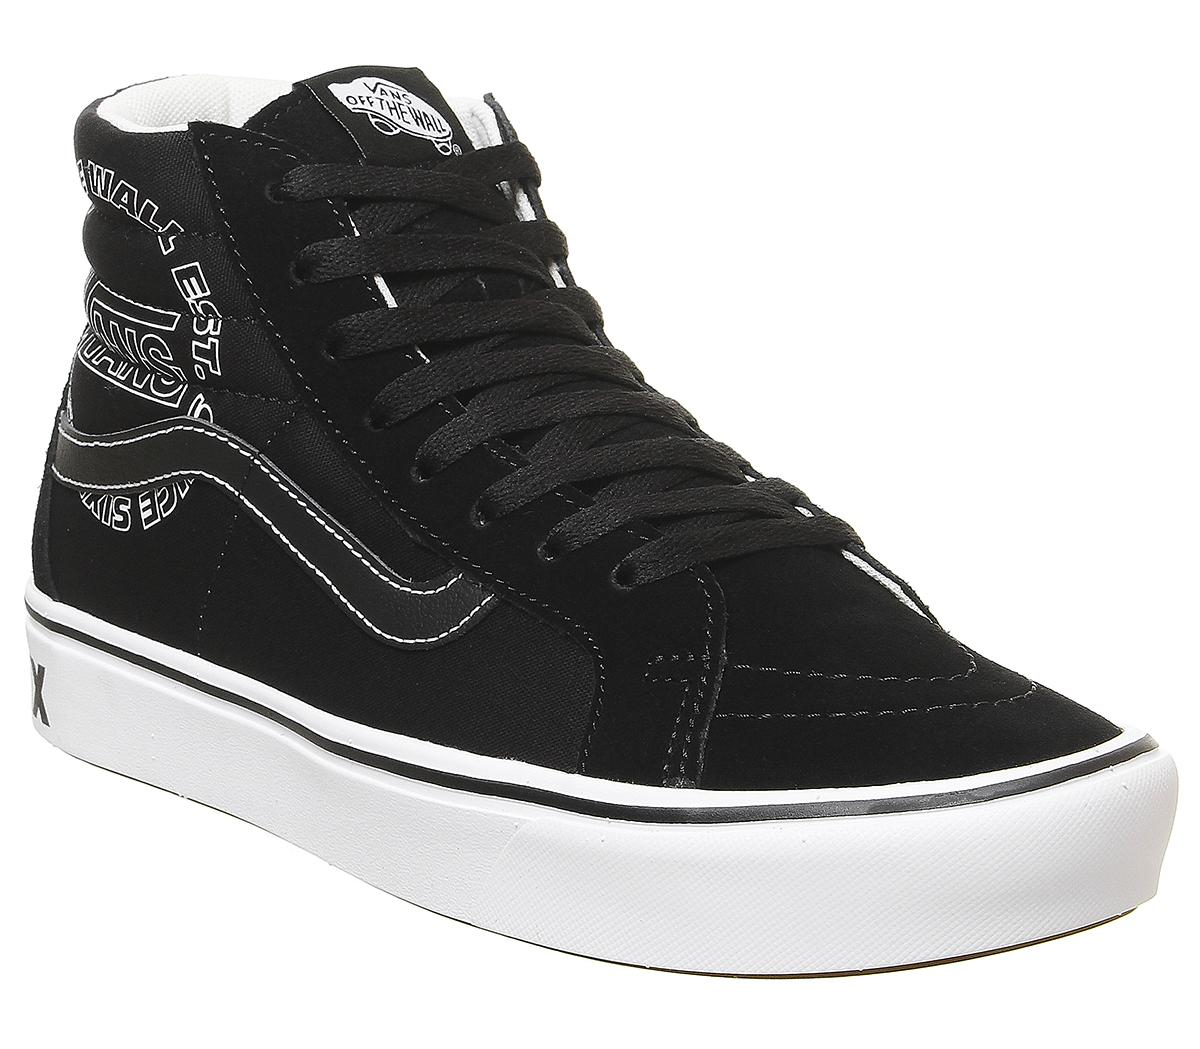 Comfycush Old Sk8 Hi Reissue Trainers